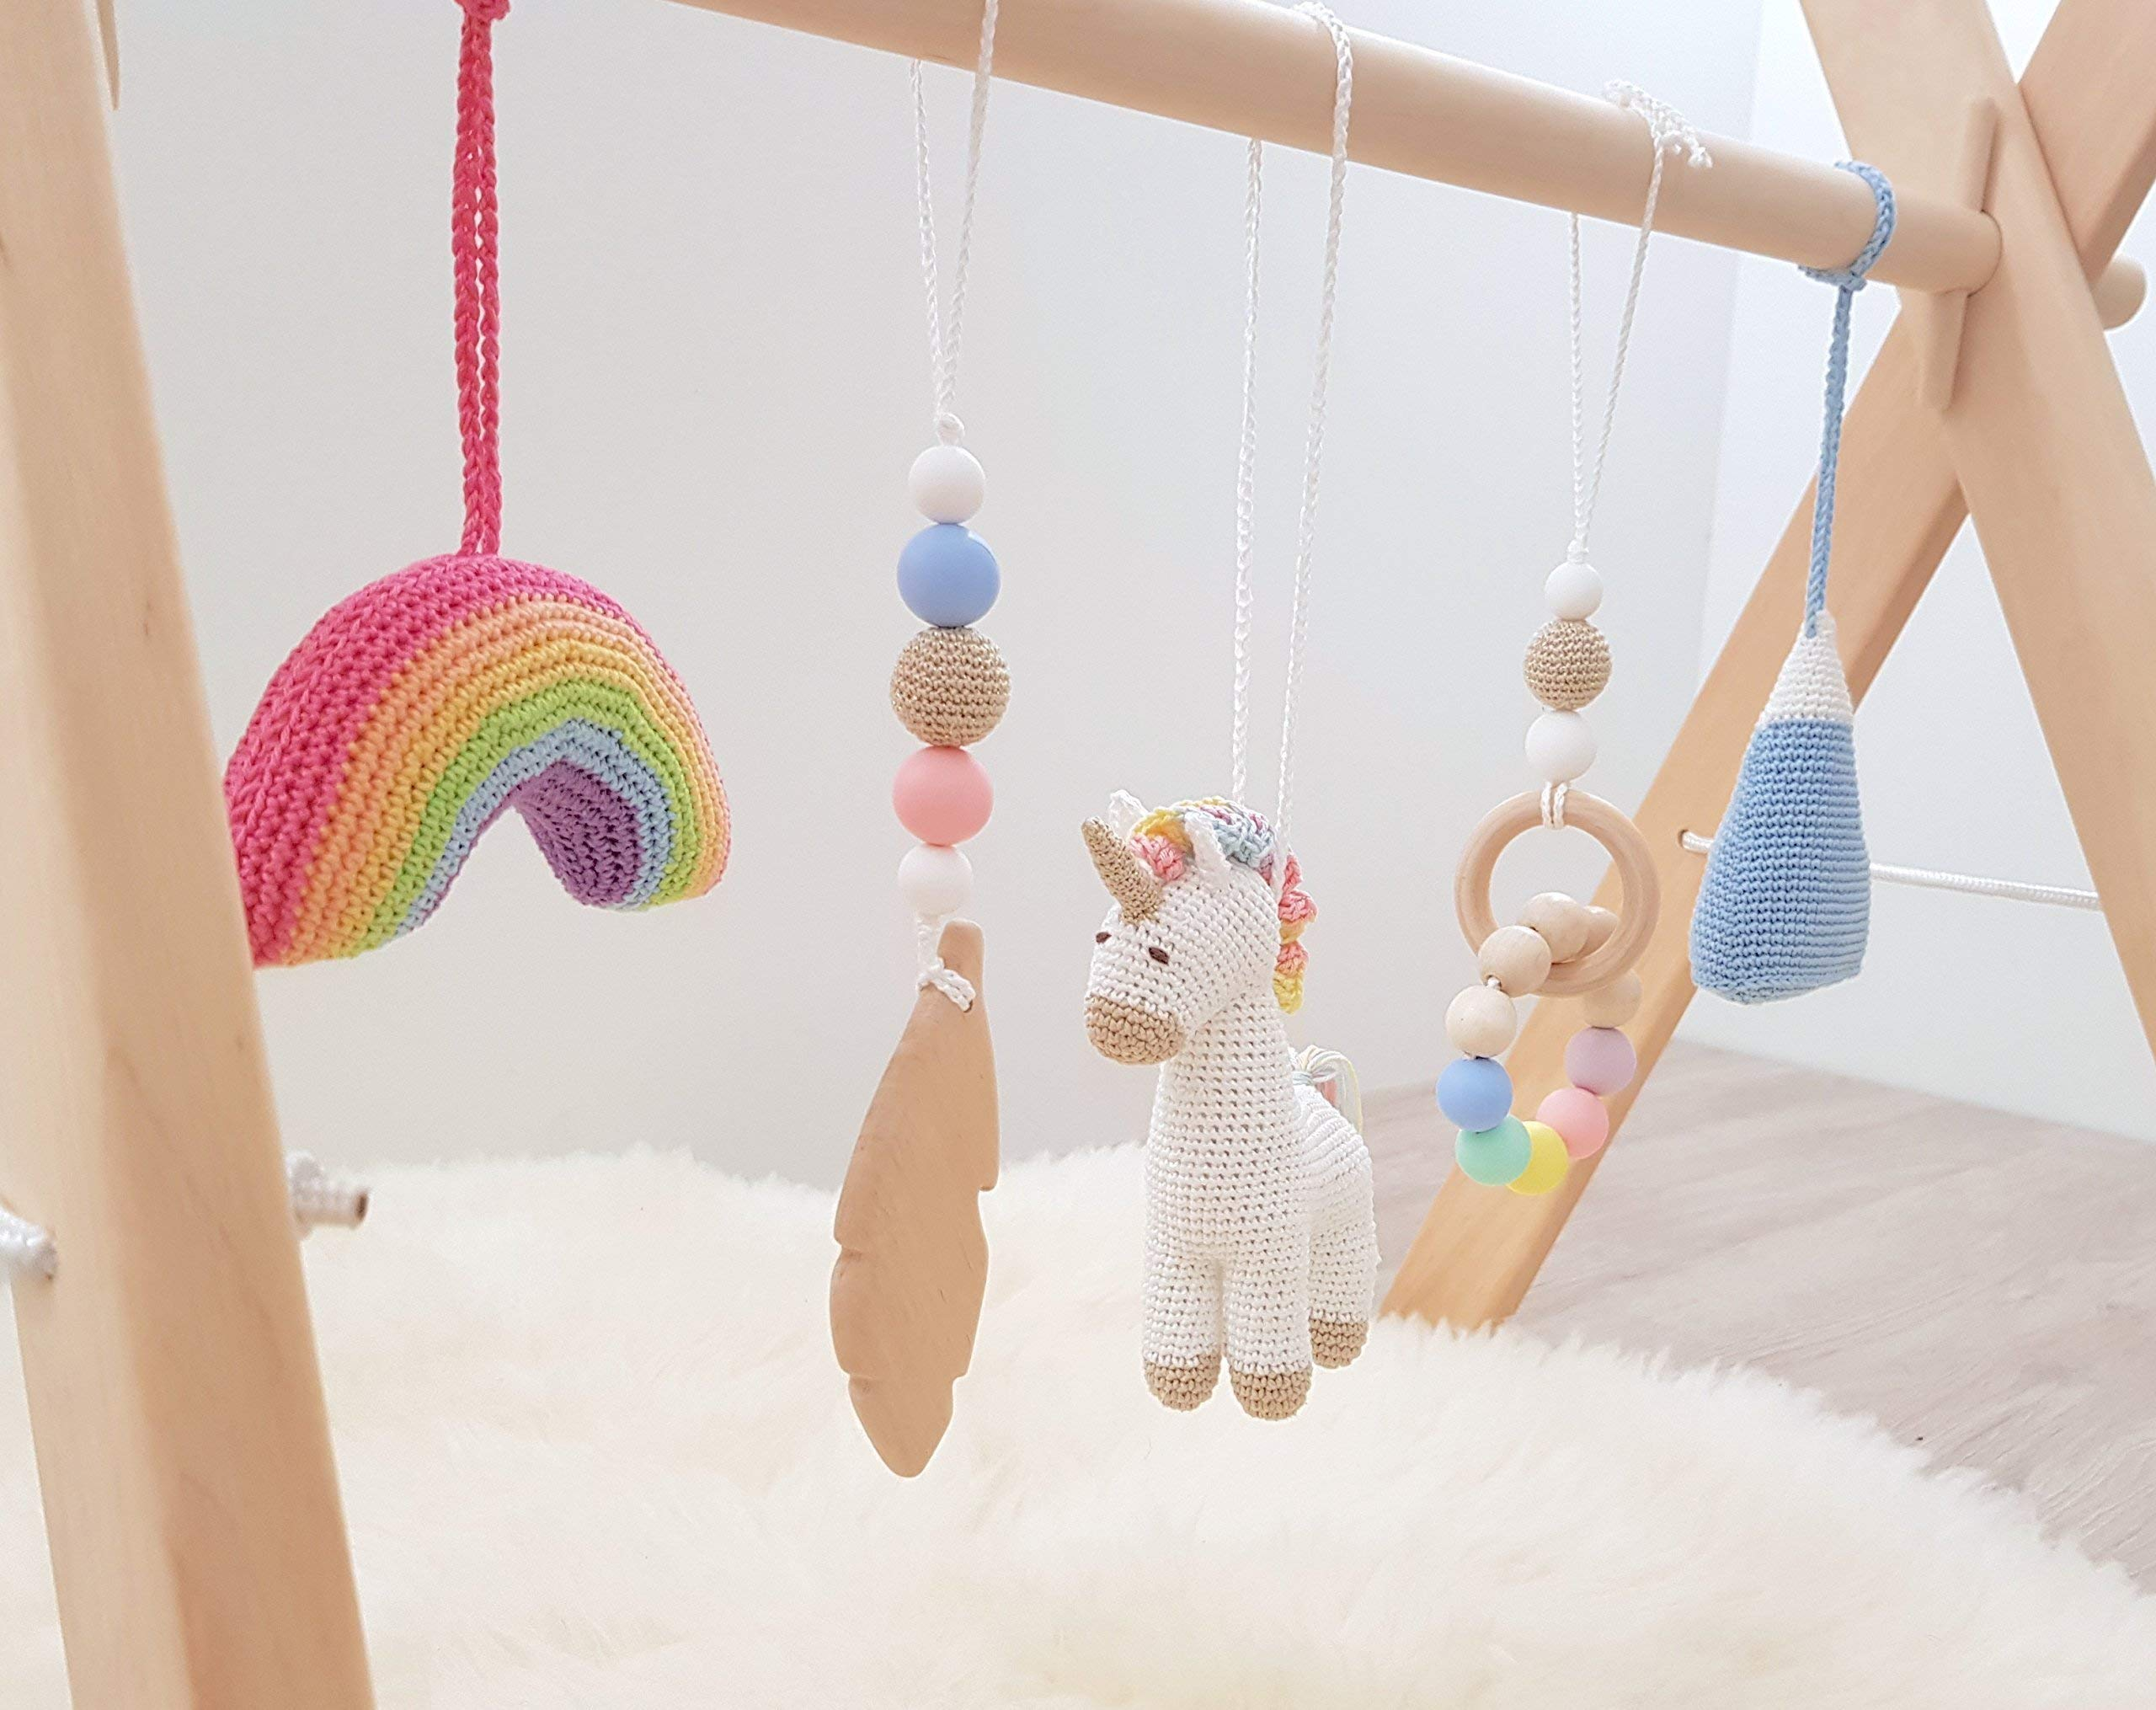 Rainbow Unicorn Baby Play Gym with 5 Mobiles: Unicorn, Rainbow, Mountain, Feather, Beaded Ring. Handmade by… 4